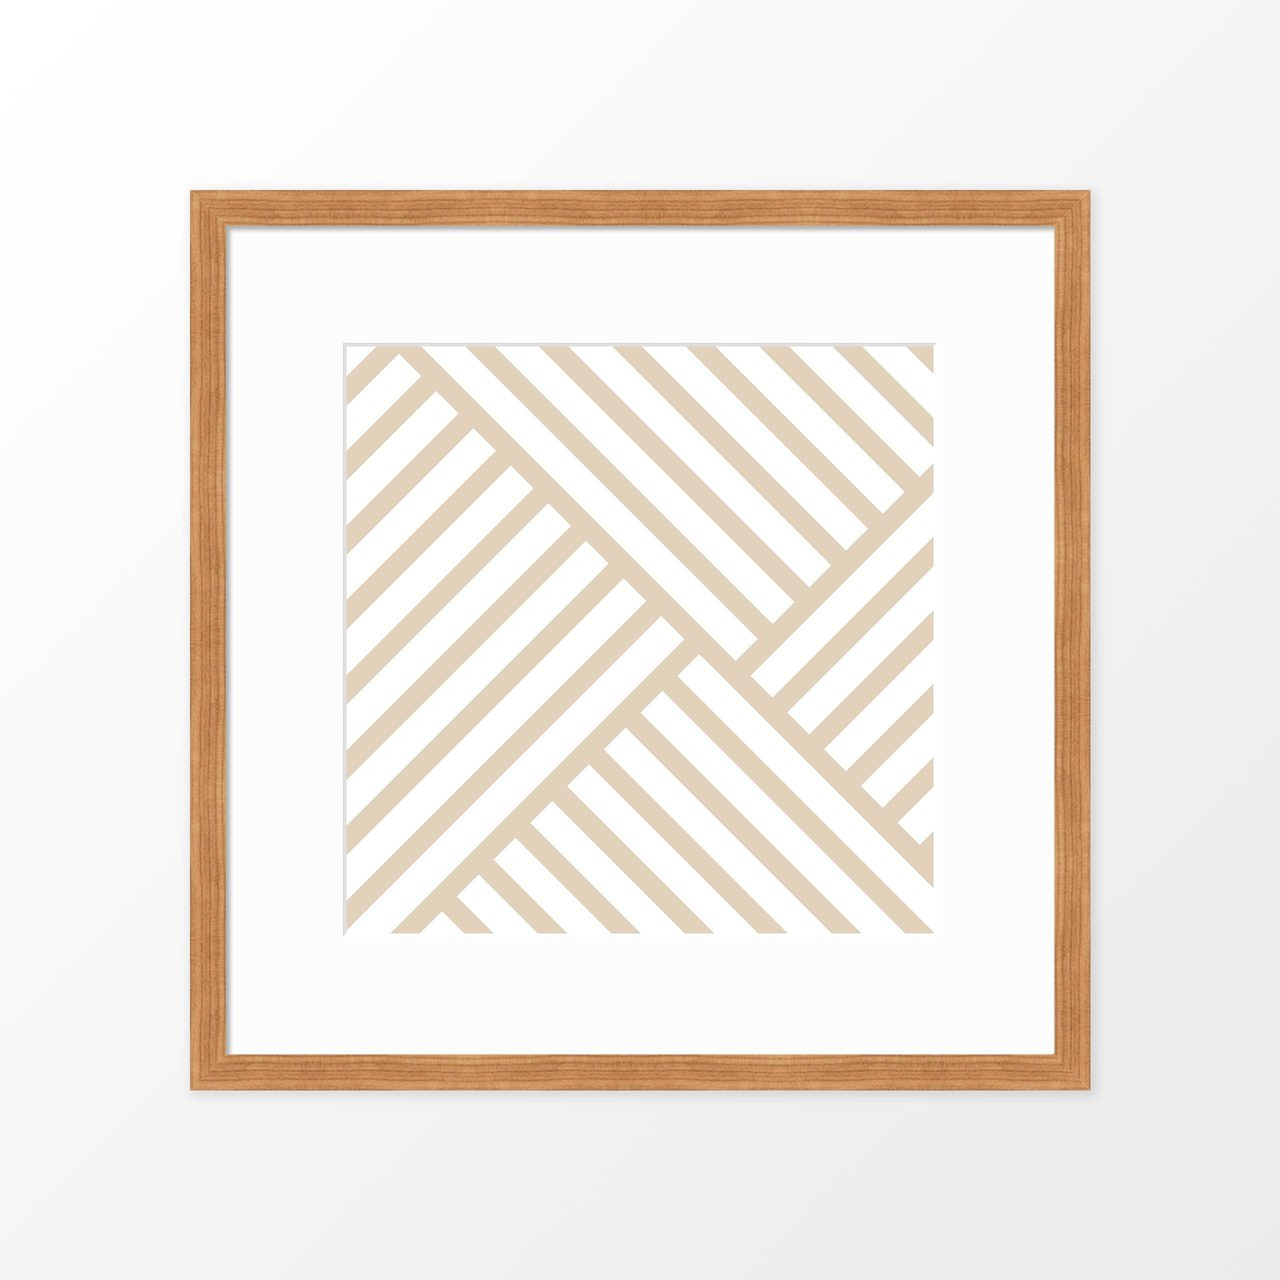 'Lines on Lines II' Modern Geometric Art Poster from The Printed Home